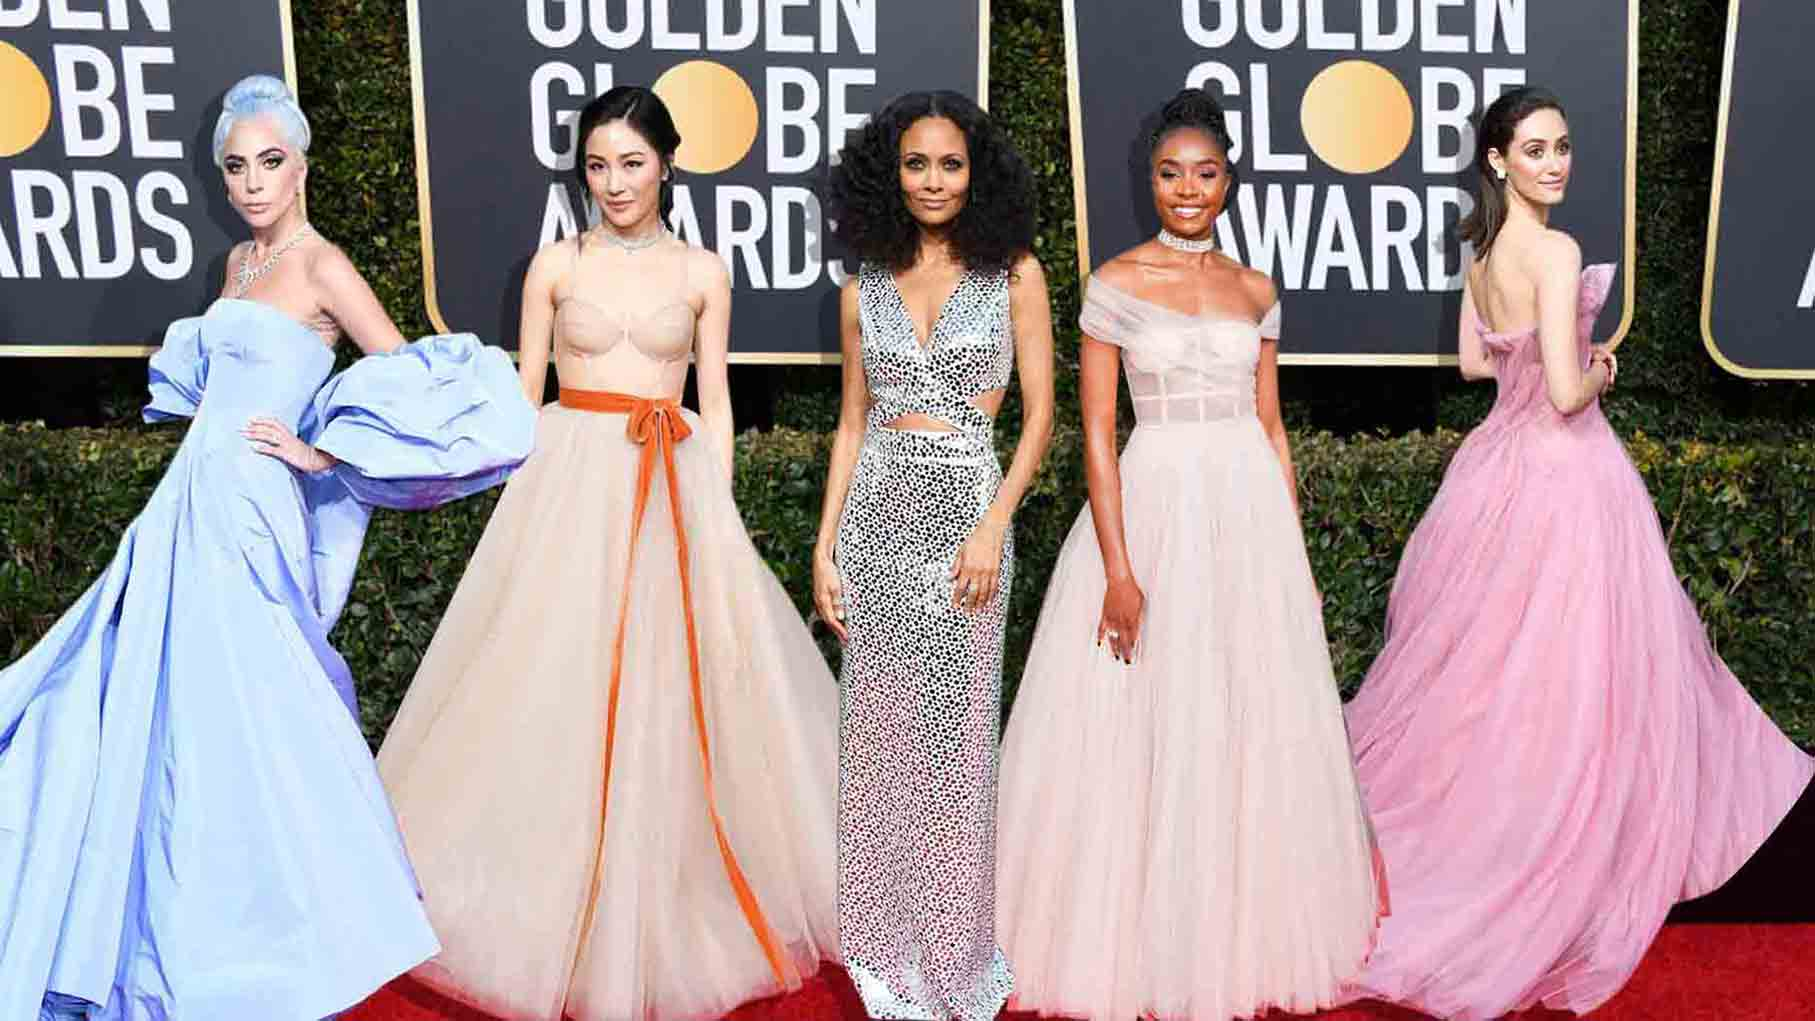 THE GLAMOROUS GOLDEN GLOBES 2019